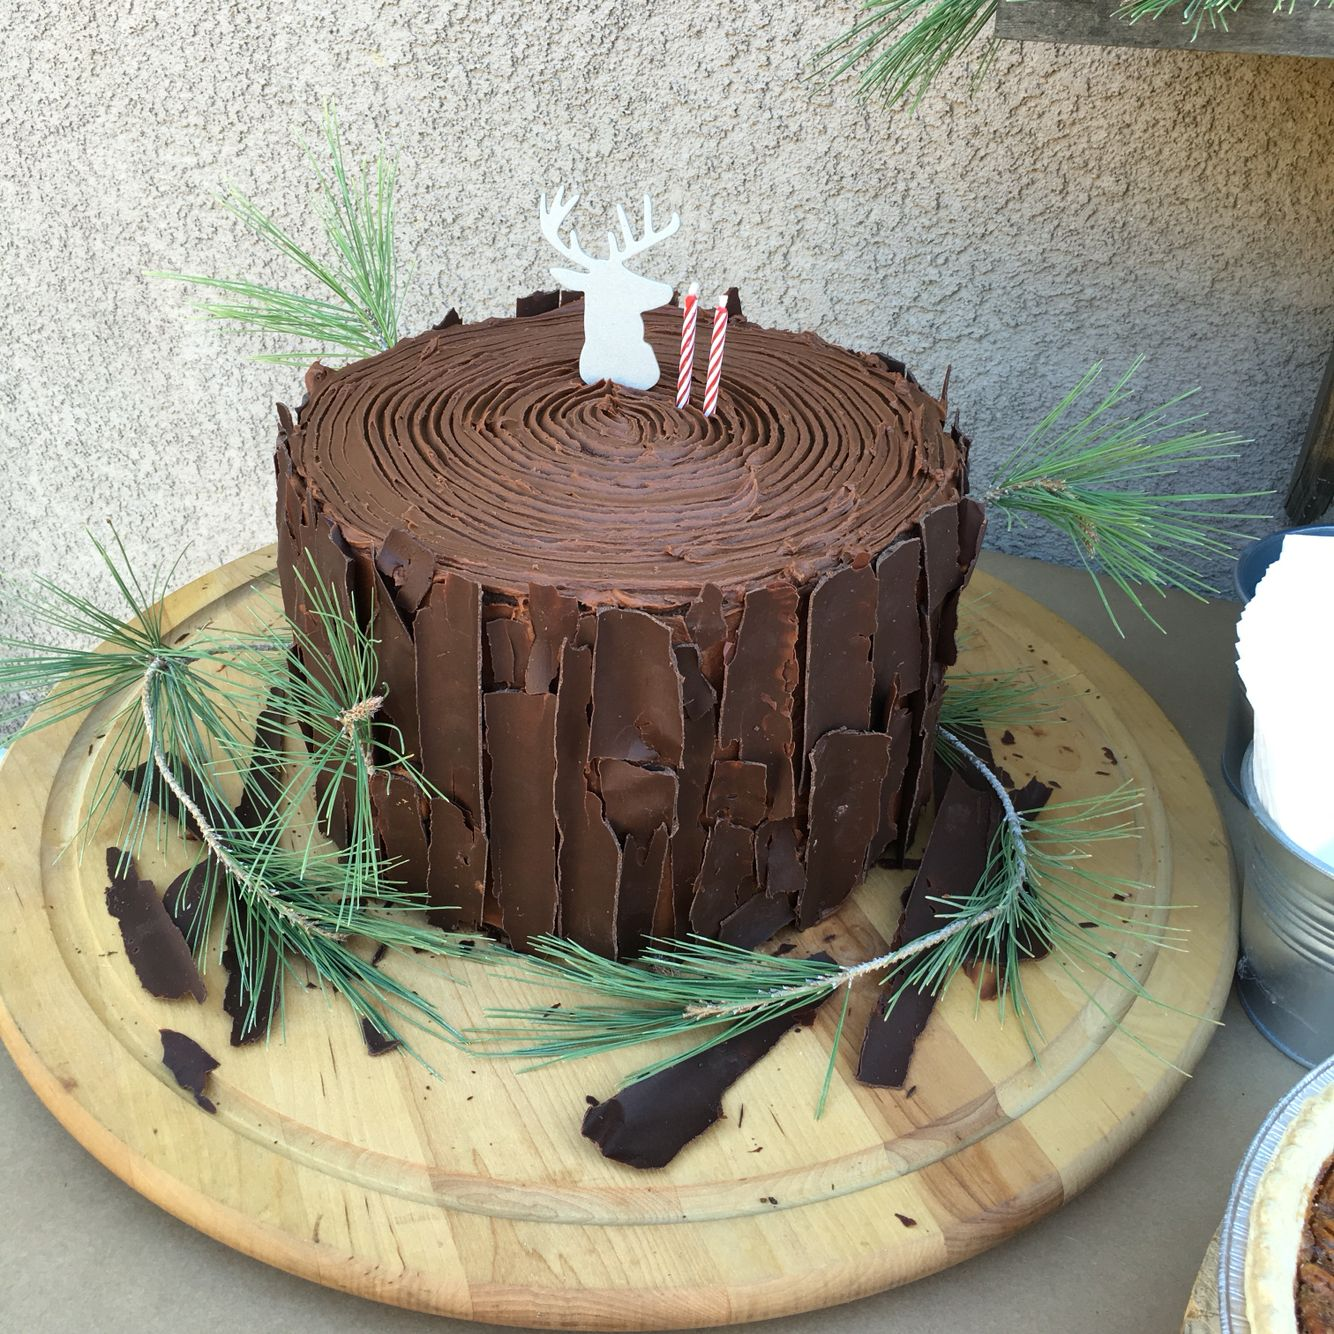 Tree Stump Cake For My 2yrs Old Nephew Lumber Jack Party